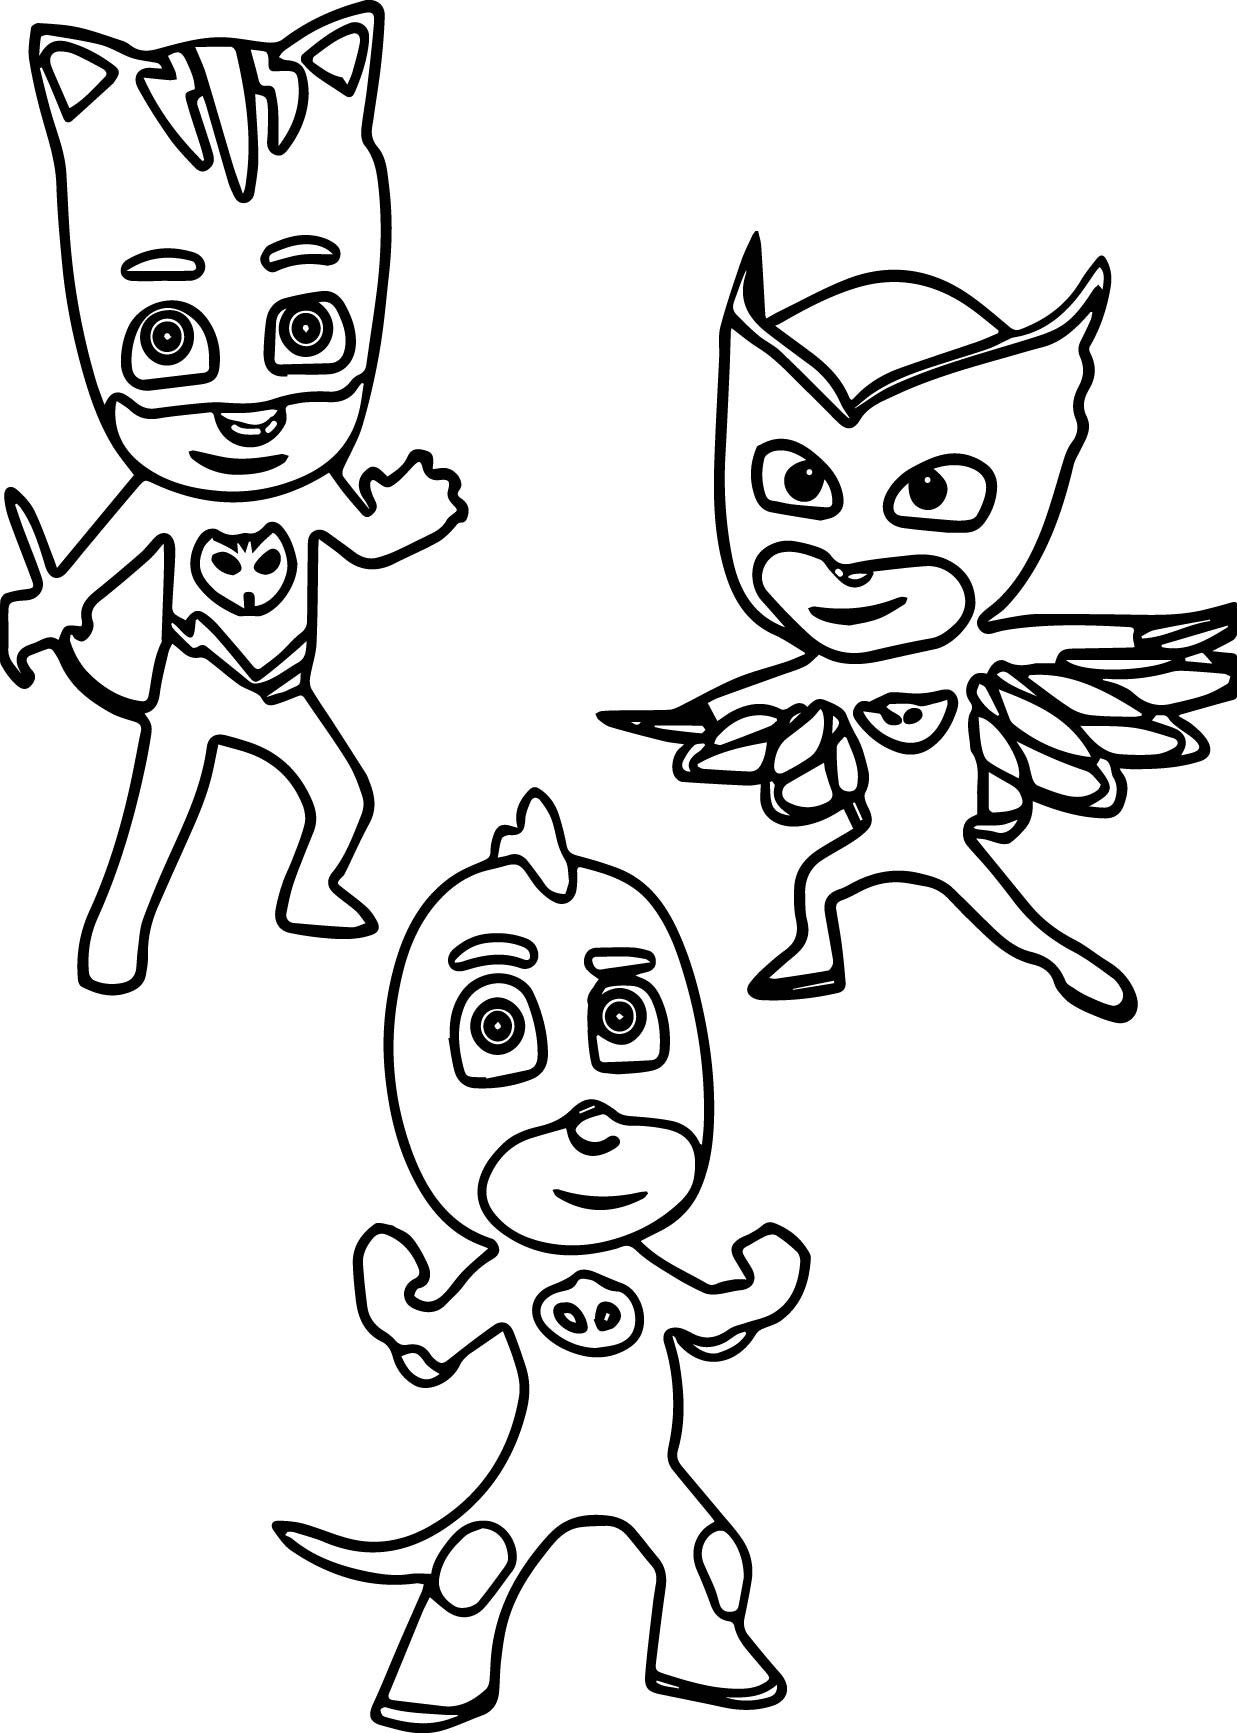 1237x1733 Pj Masks Gecko Coloring Pages Best Of Pj Masks Coloring Pages Save